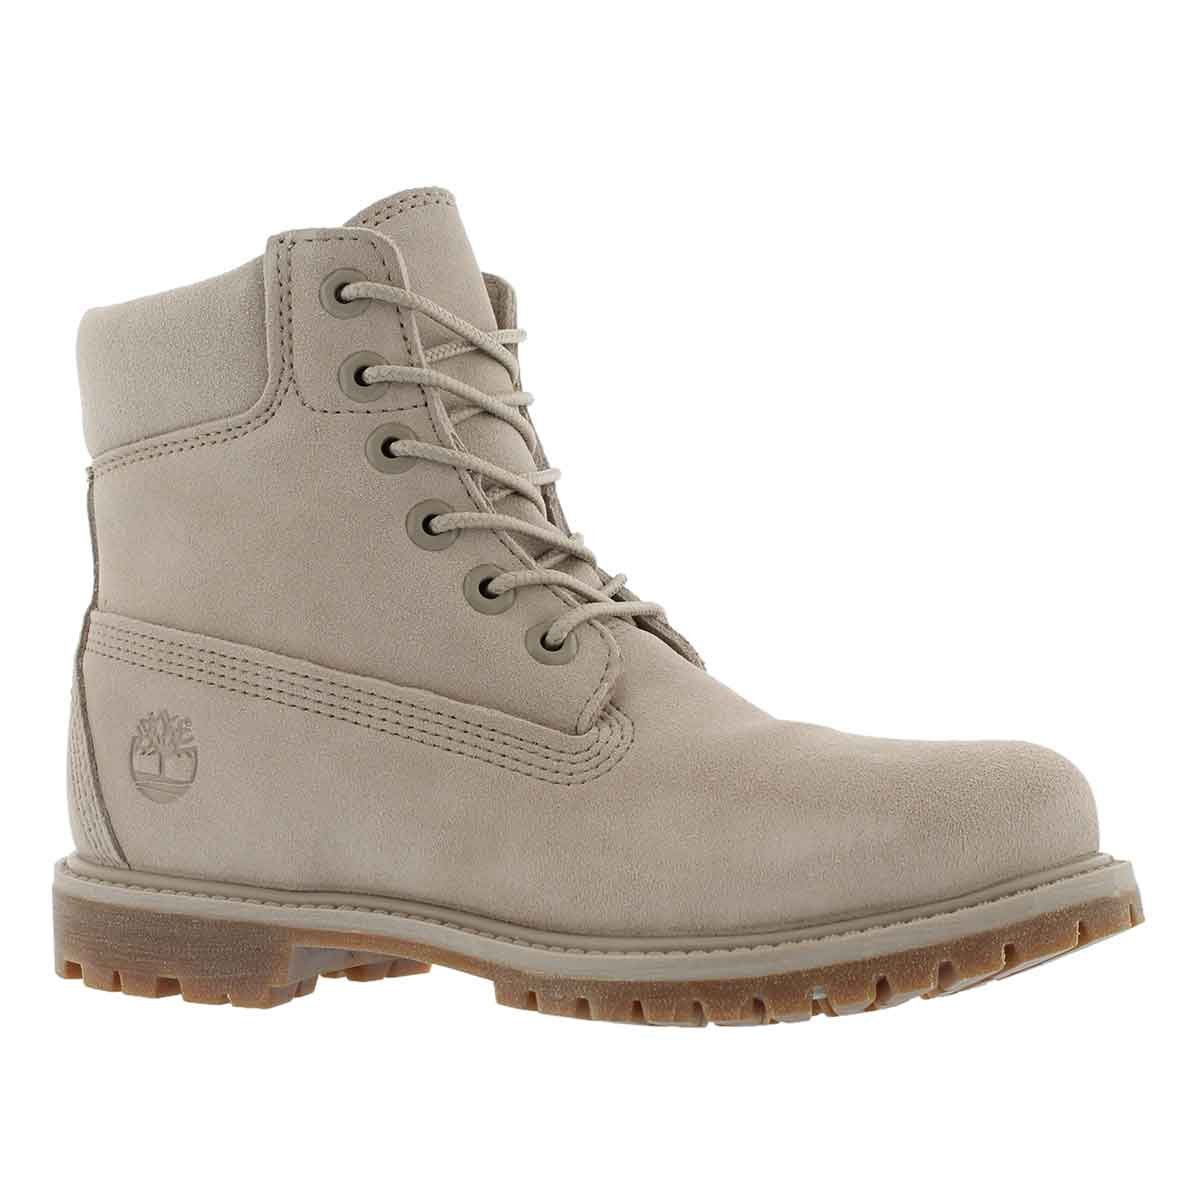 "Women's ICON 6"" PREMIUM light taupe boots"